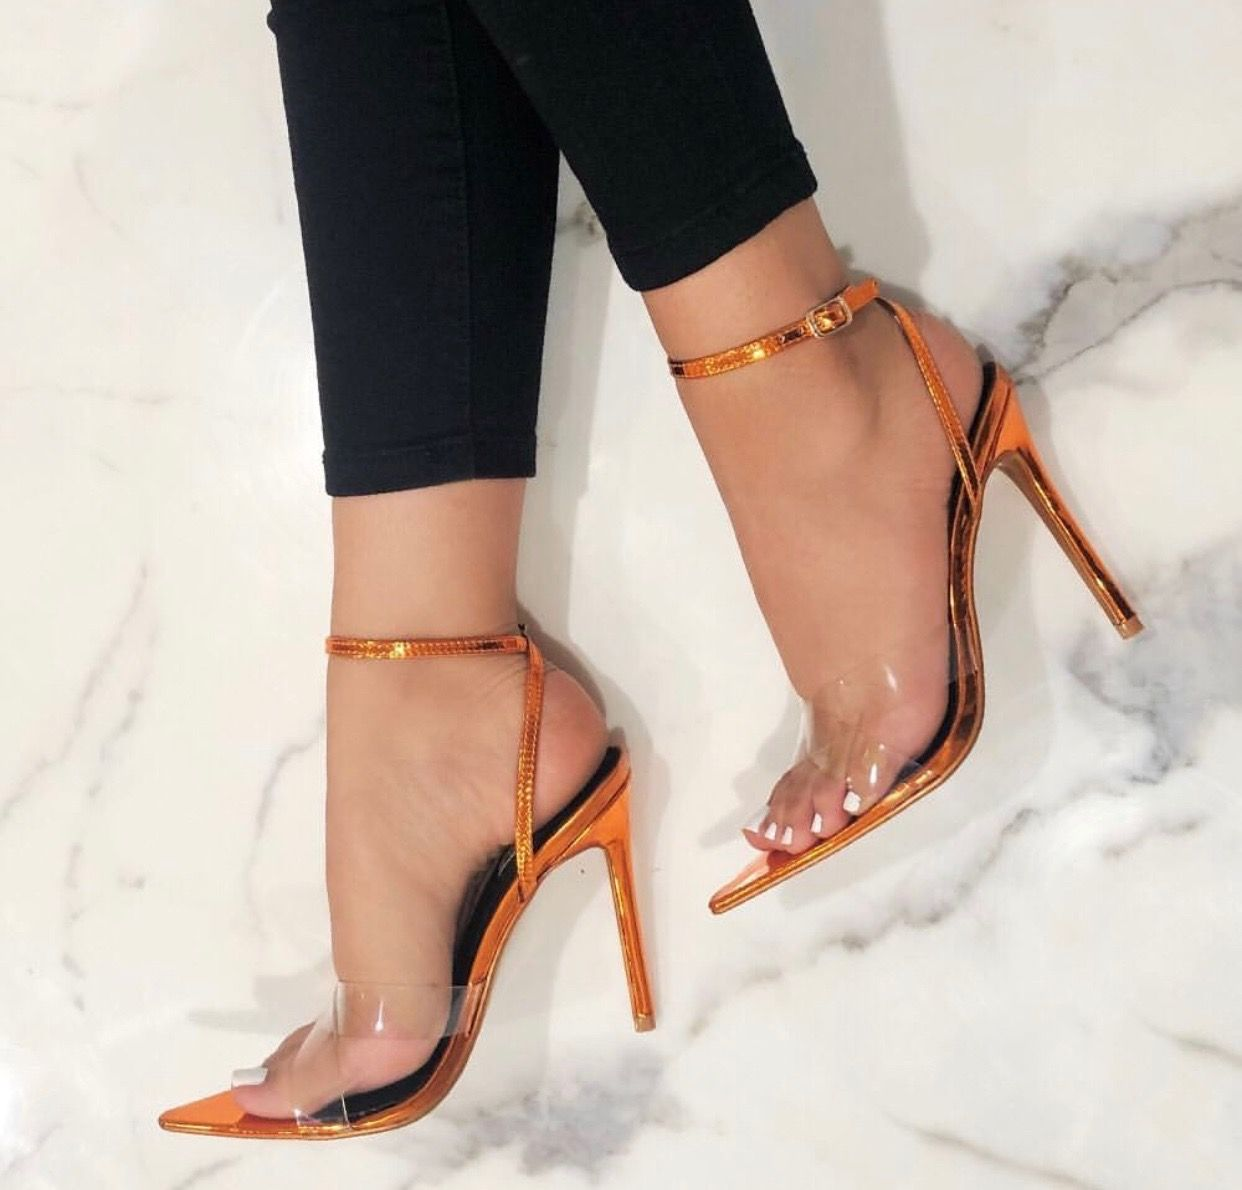 Stiletto Shoes Shoesaddict Sandals Zapatos Estilo Fashion Style Vanessacrestto Stiletto Ayakkabilar Kadin Ayakkabilari